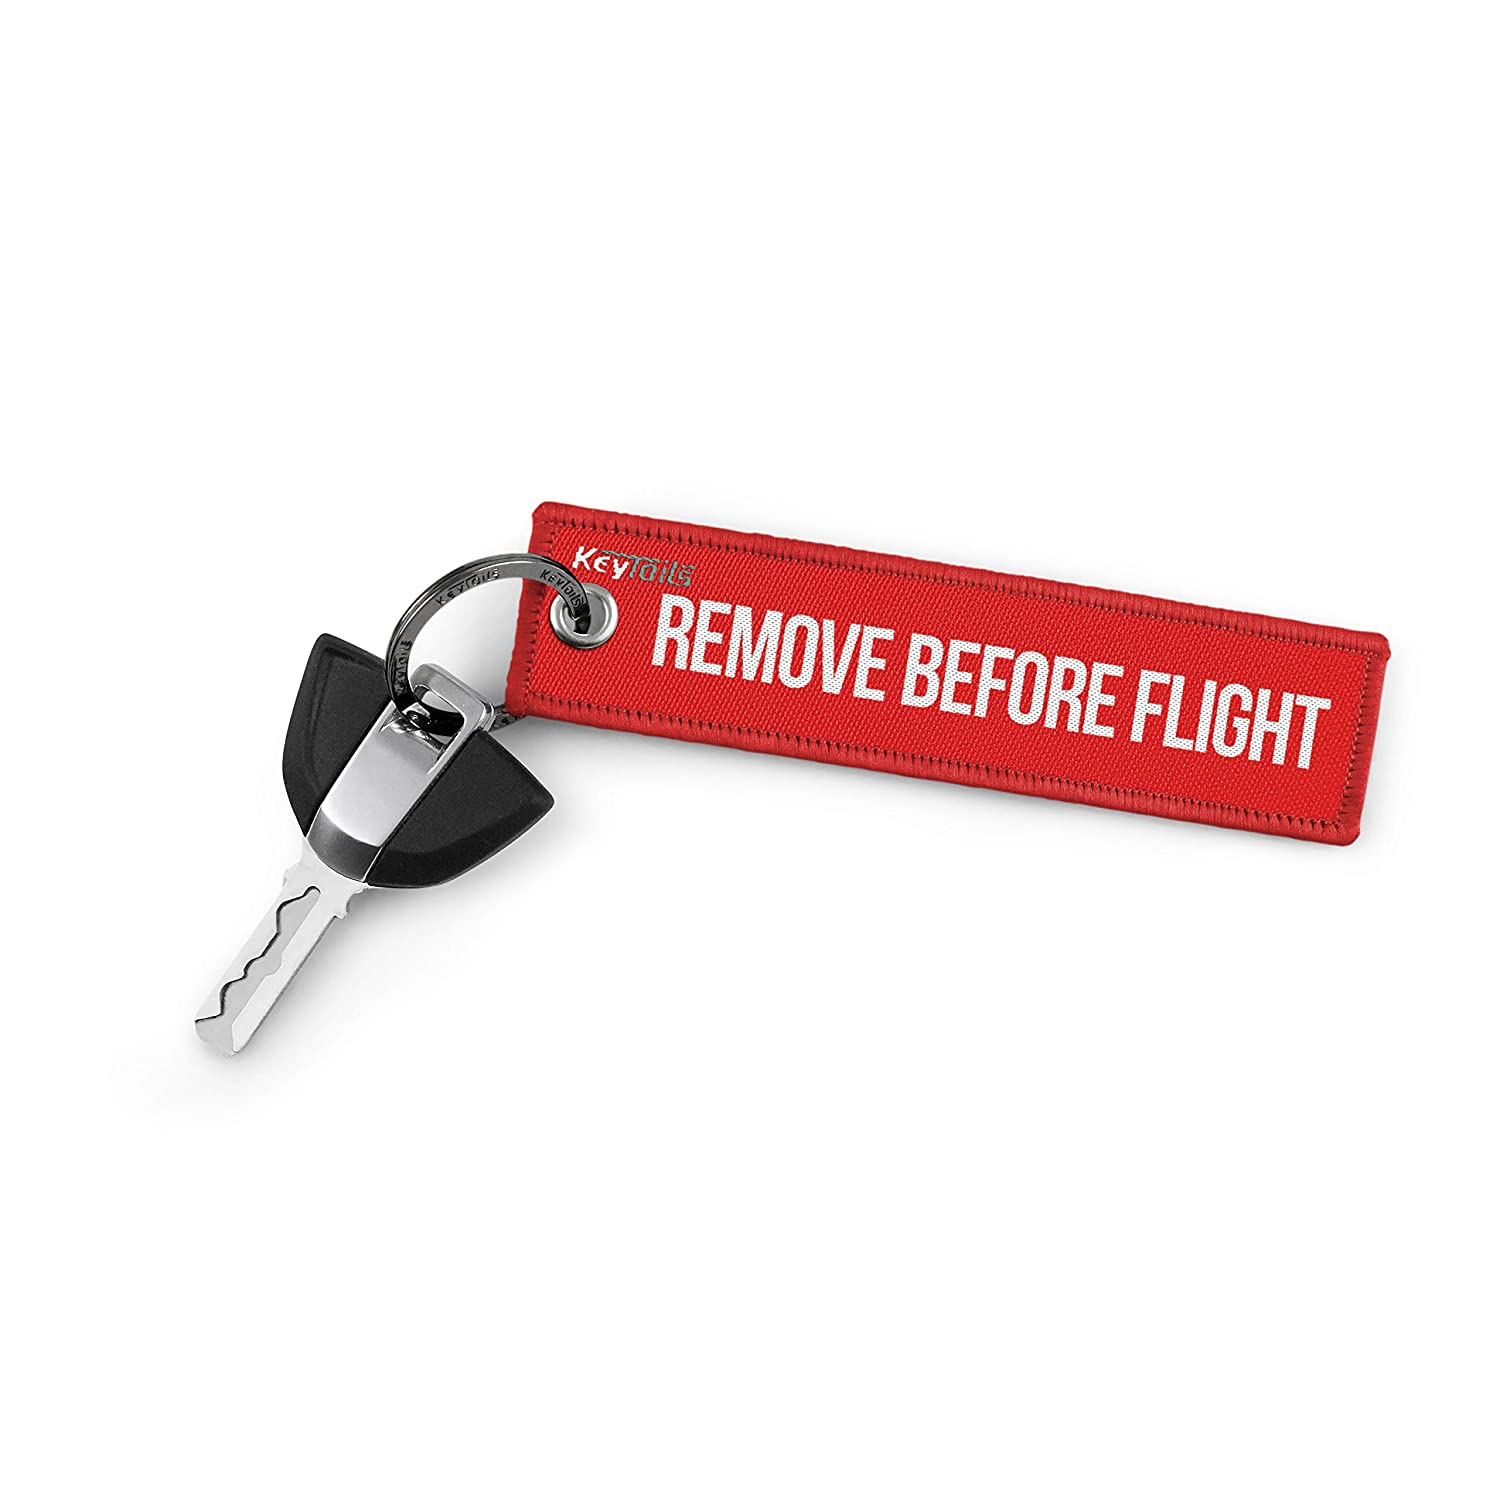 Premium Quality Key Tag for Motorcycle KEYTAILS Keychains ATV UTV Remove Before Flight Scooter Car